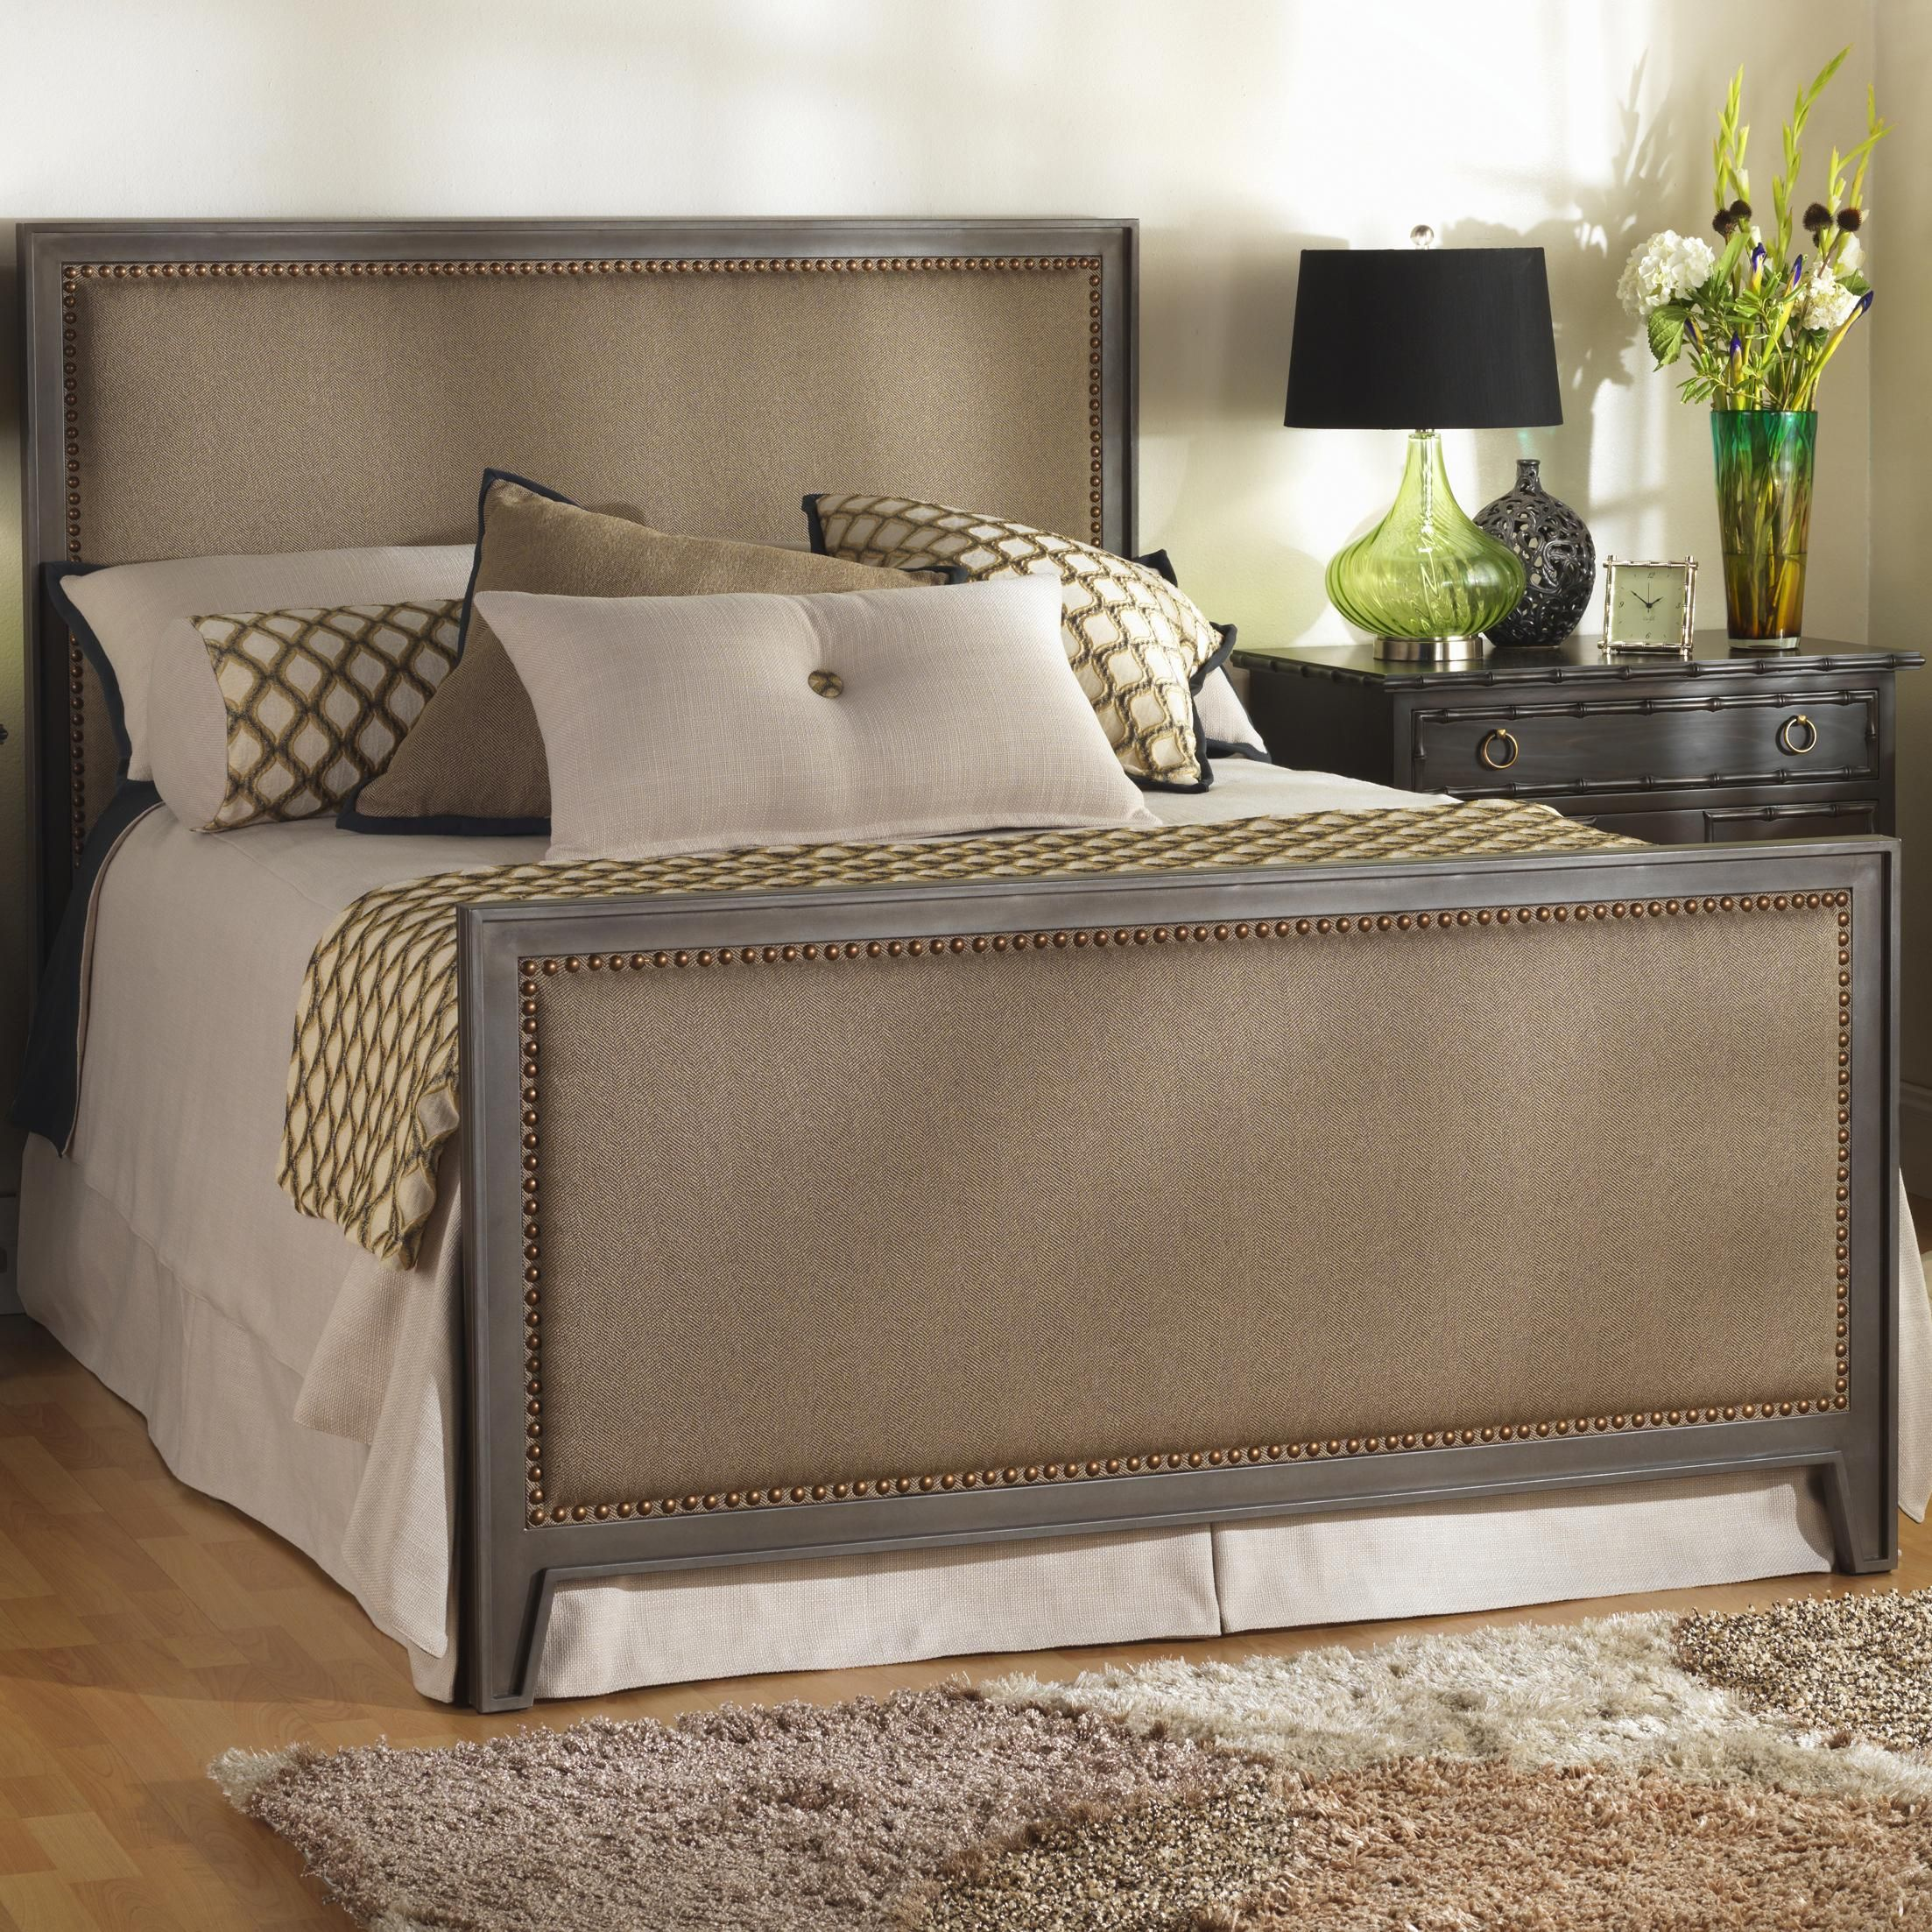 height threshold width allen b beds iron products hudson wesley saratoga trim item bed s daybed bedssaratoga